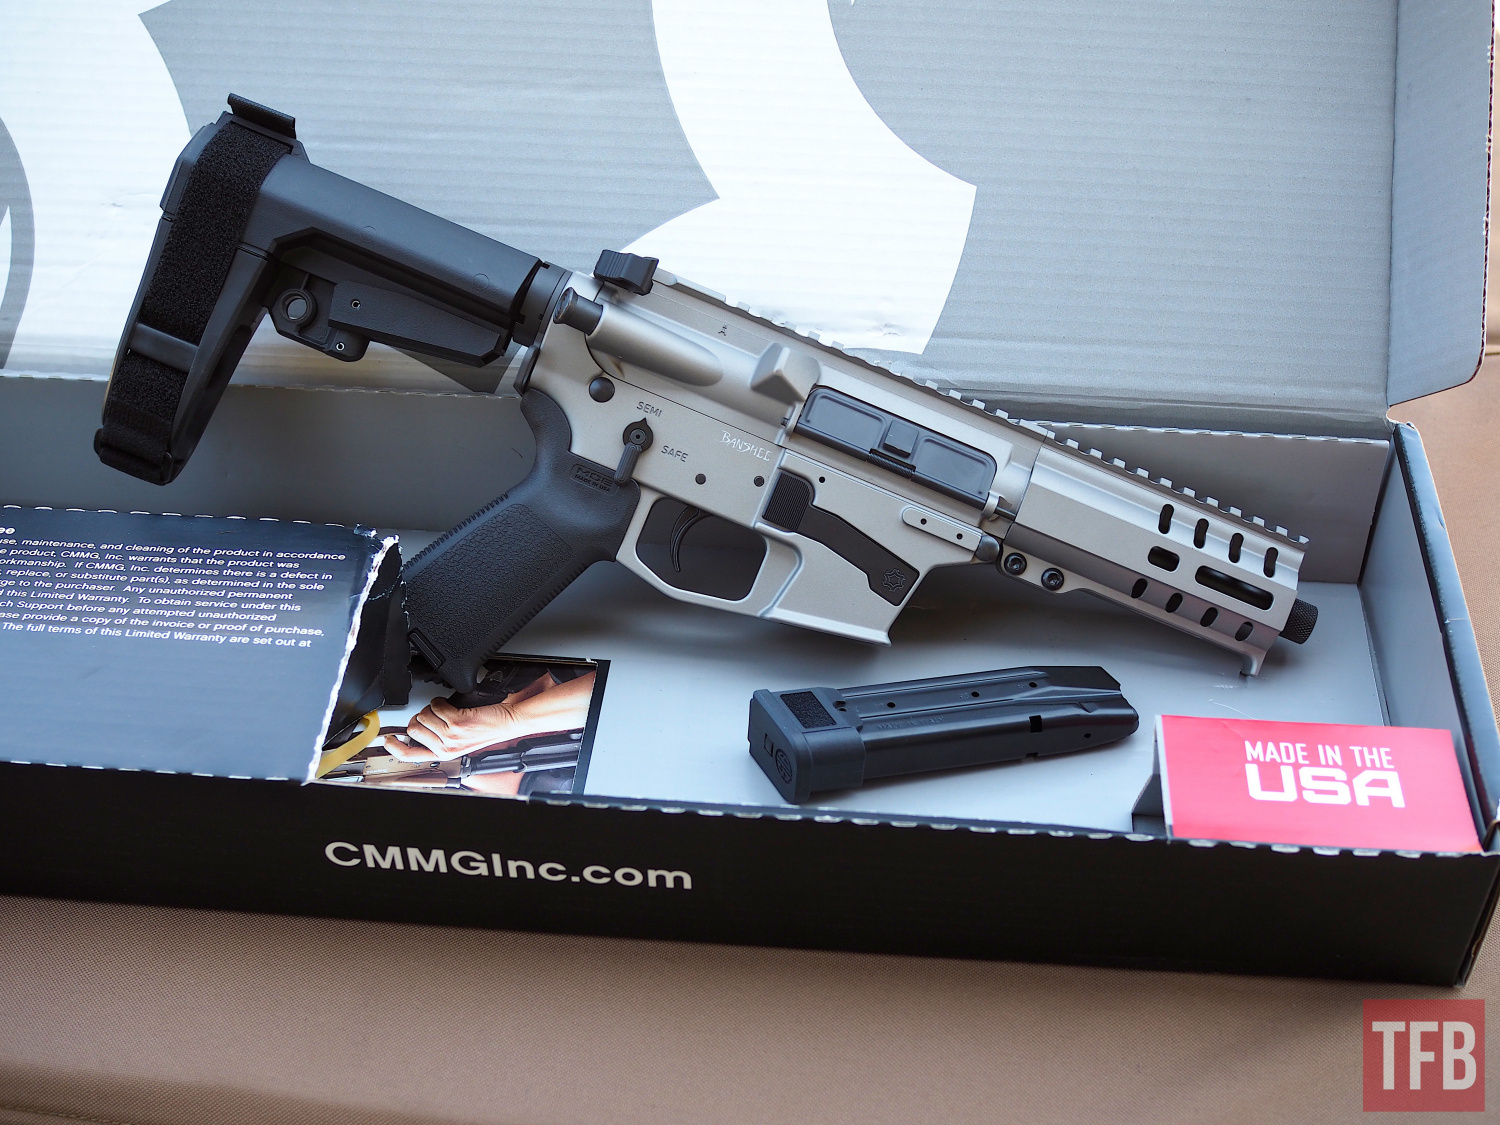 CMMG Mk17 as it comes in the box